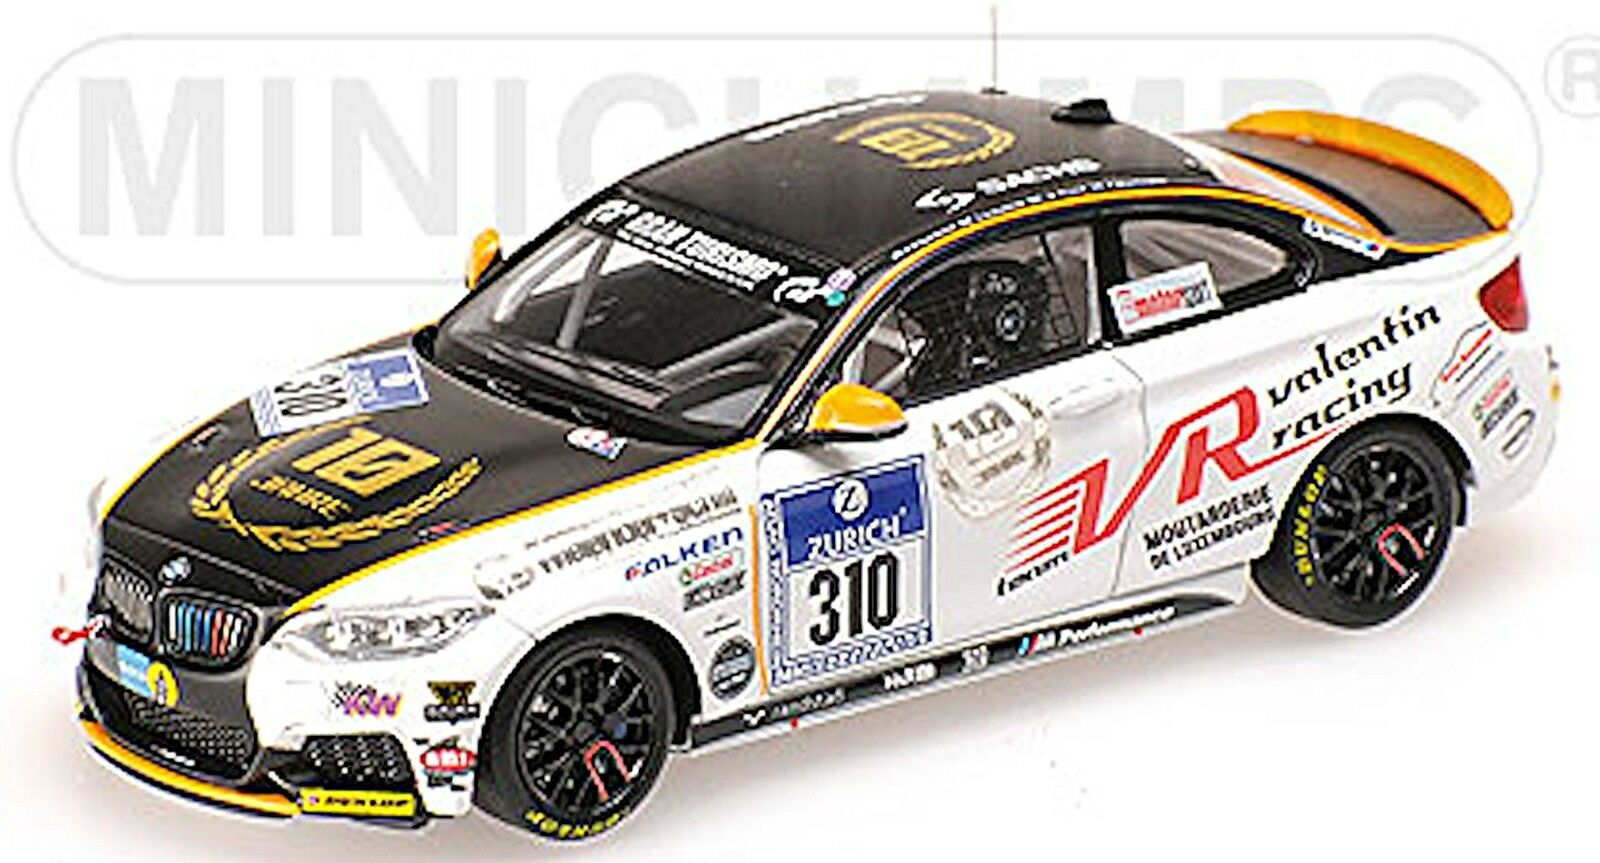 Bmw m 235i racing 24h nurburgring 2014 Team valentin racing  43 Minichamps